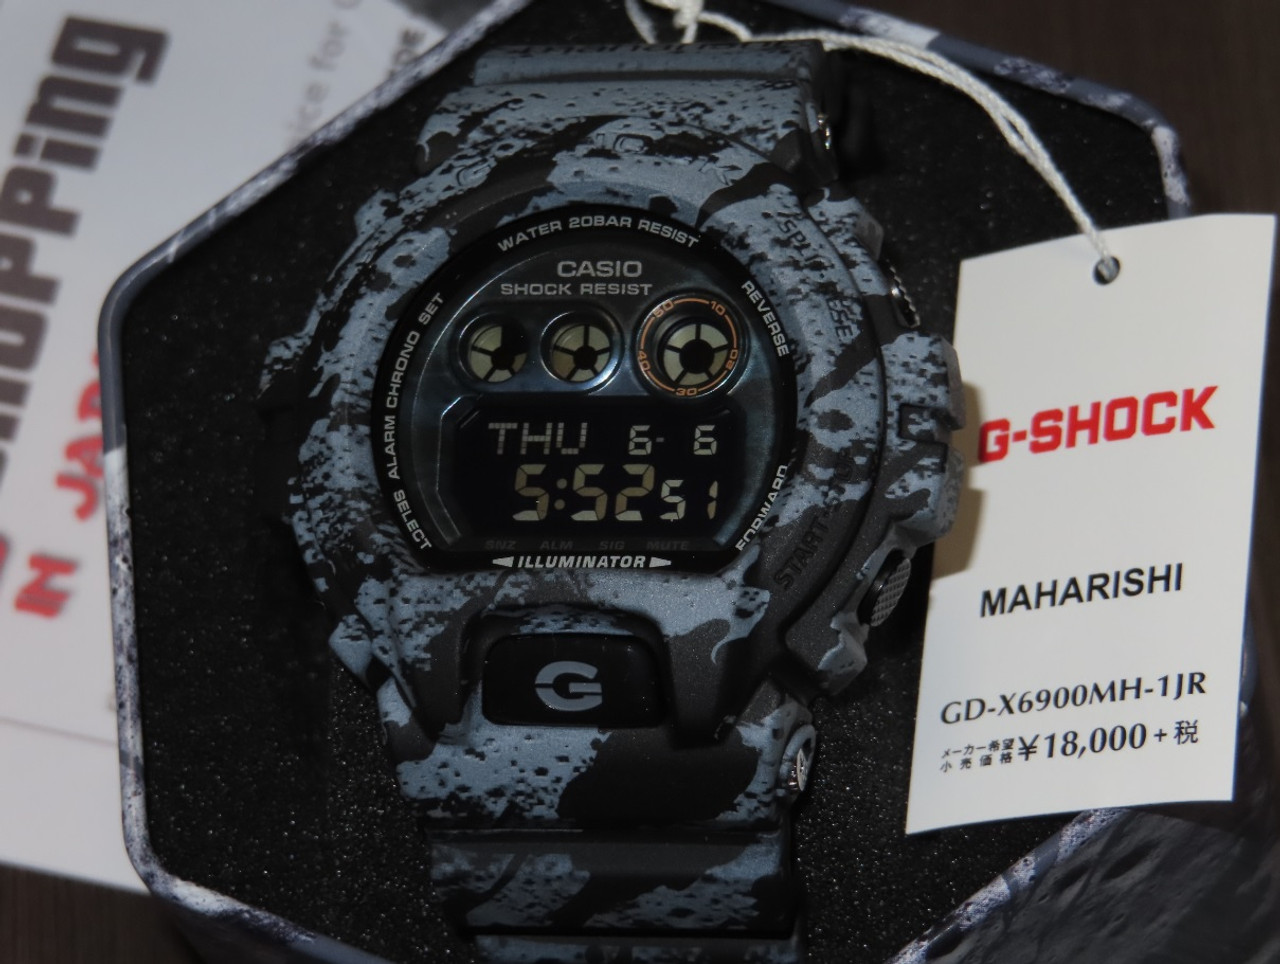 Casio G-Shock Maharishi GD-X6900MH-1JR Lunar Bonsai